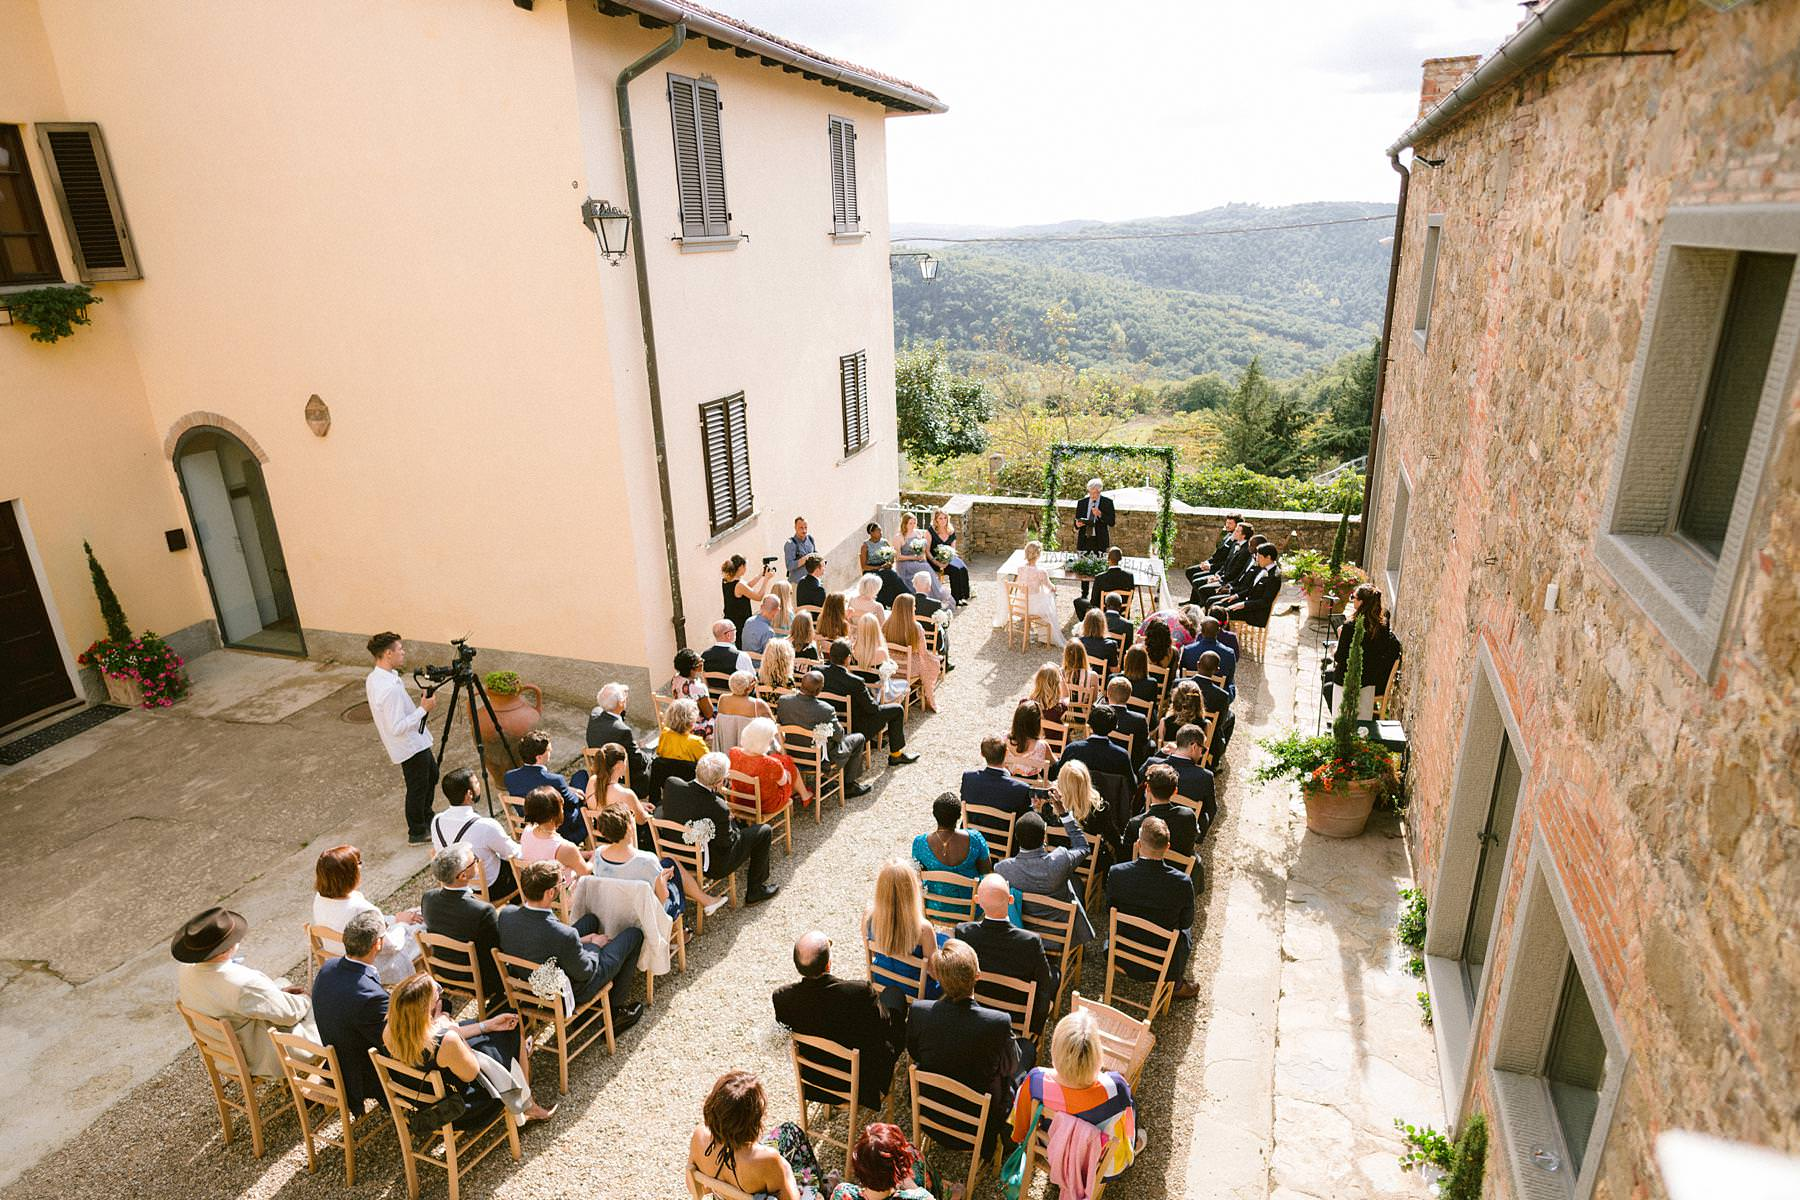 Emotional symbolic outdoor wedding ceremony took on a terrace overlooking the green rolling hills of Tuscany at historic residence of Montelucci Country Resort located between Chianti and Valdarno